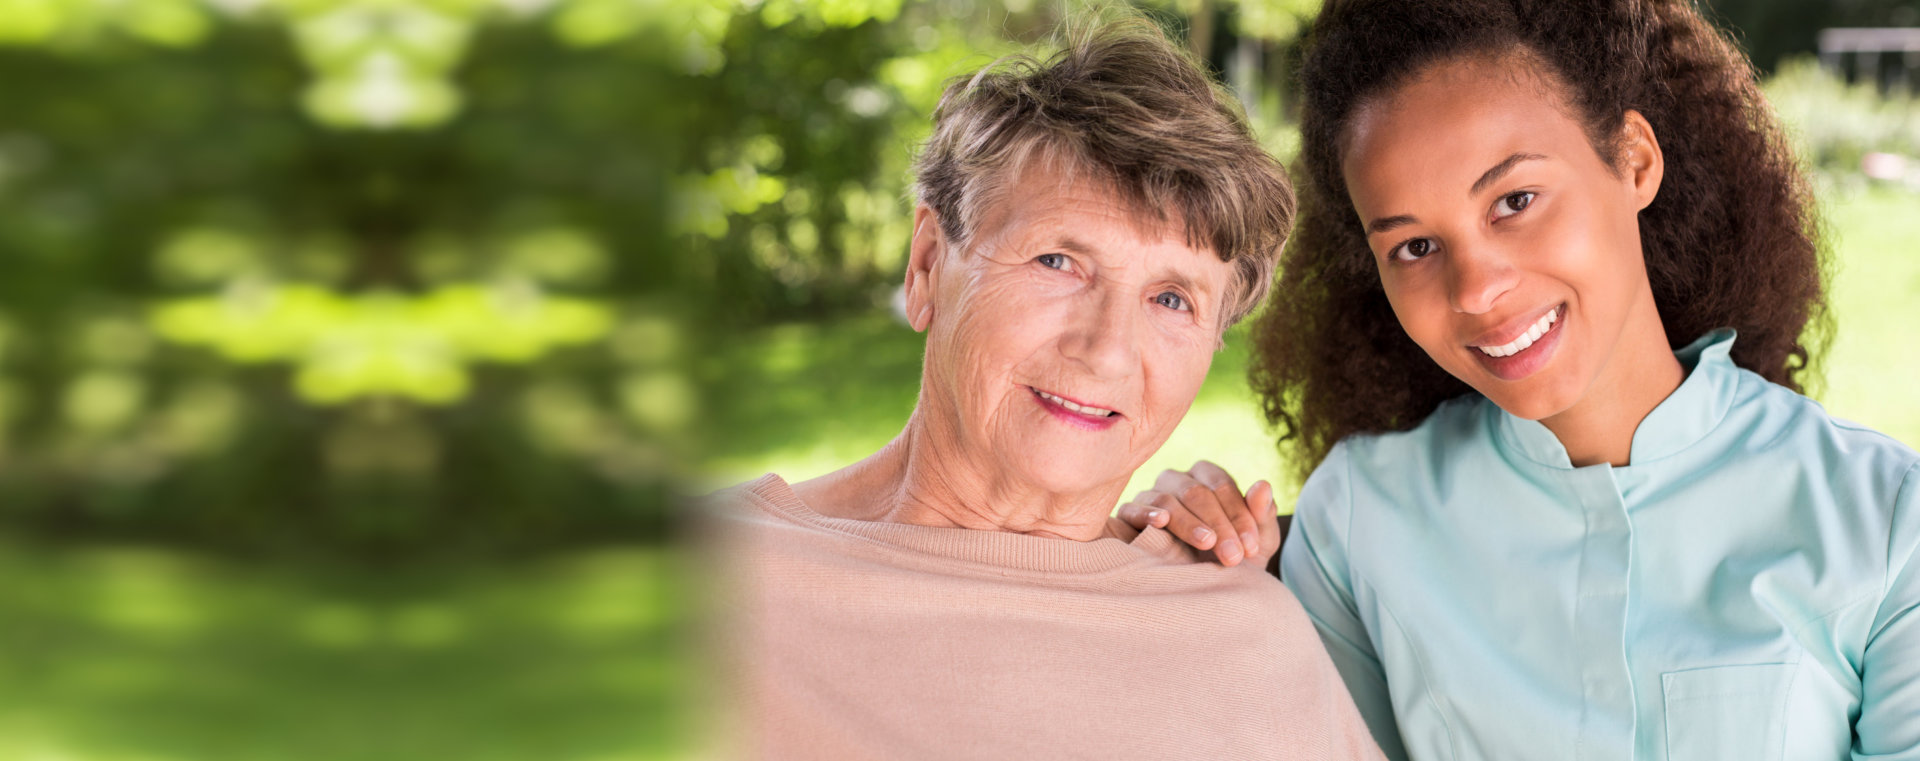 Picture presenting friendship between retiree and nurse